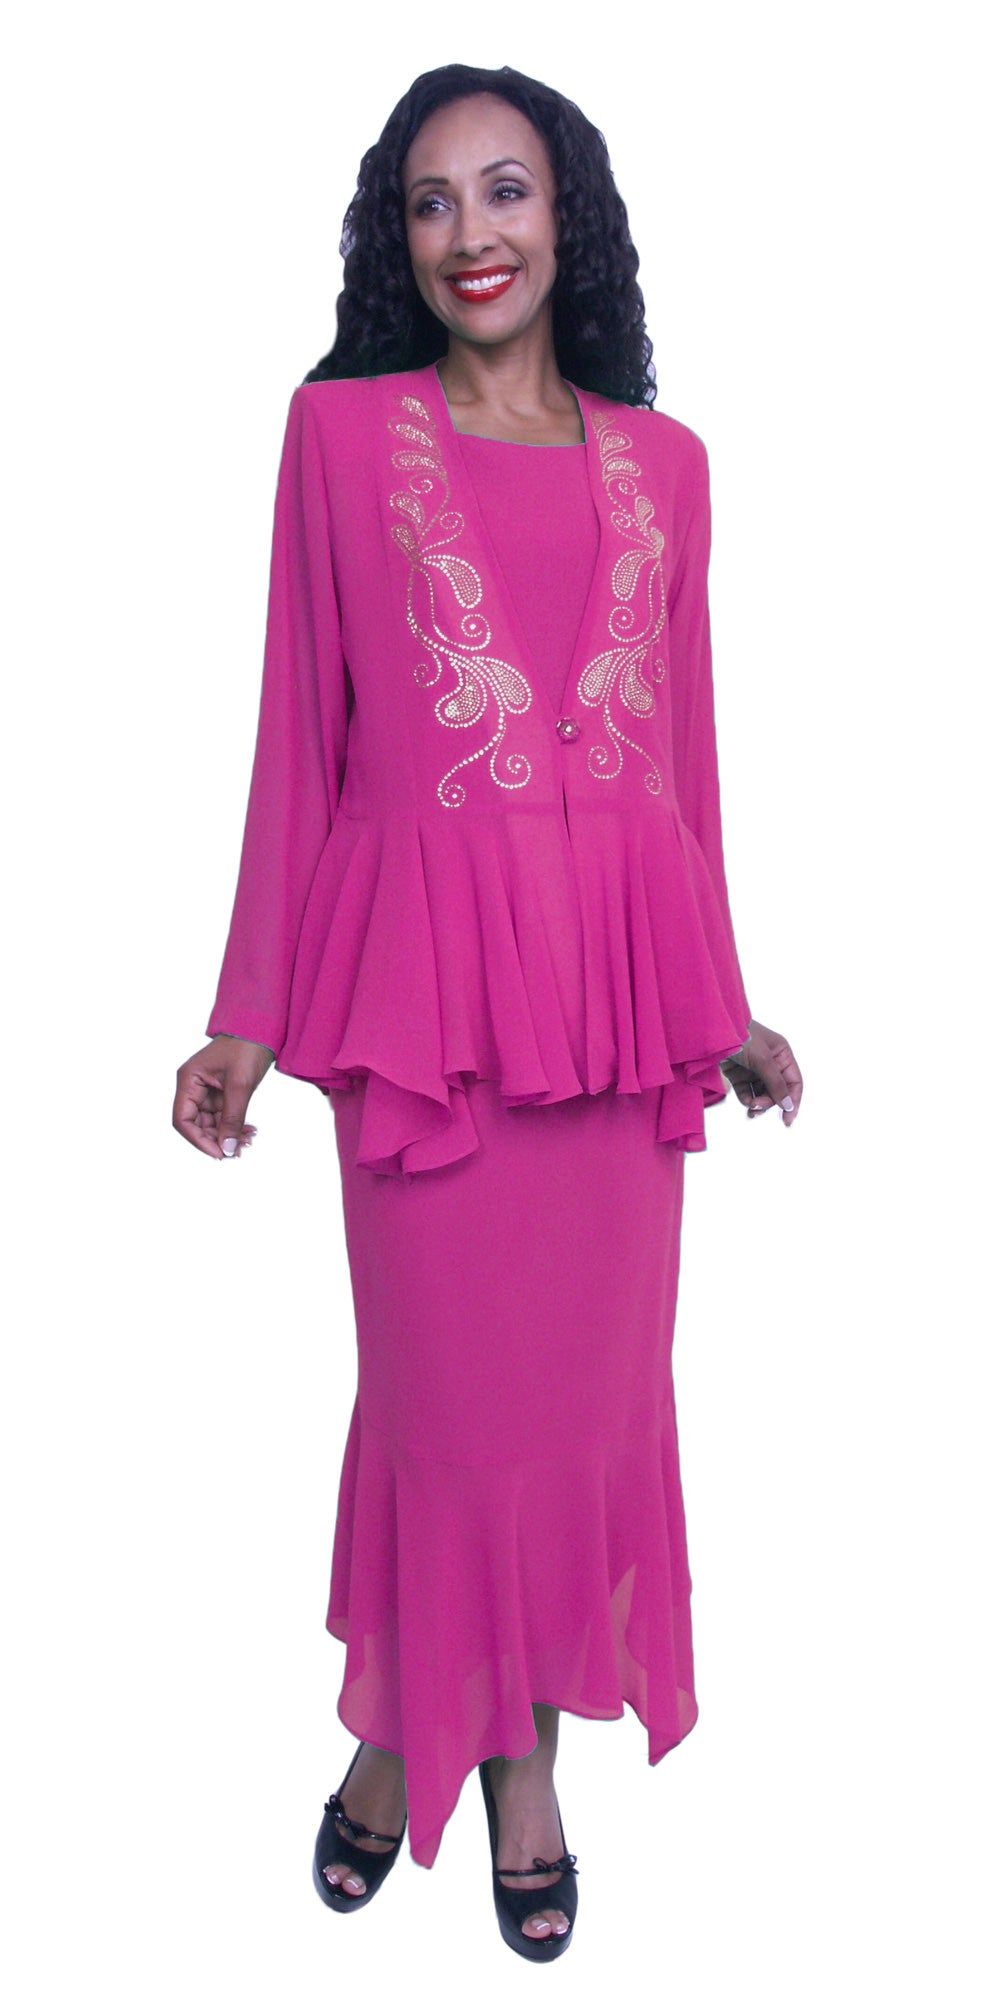 Tea-Length Fuchsia Peplum Embellished Jacket Plus Size Dress